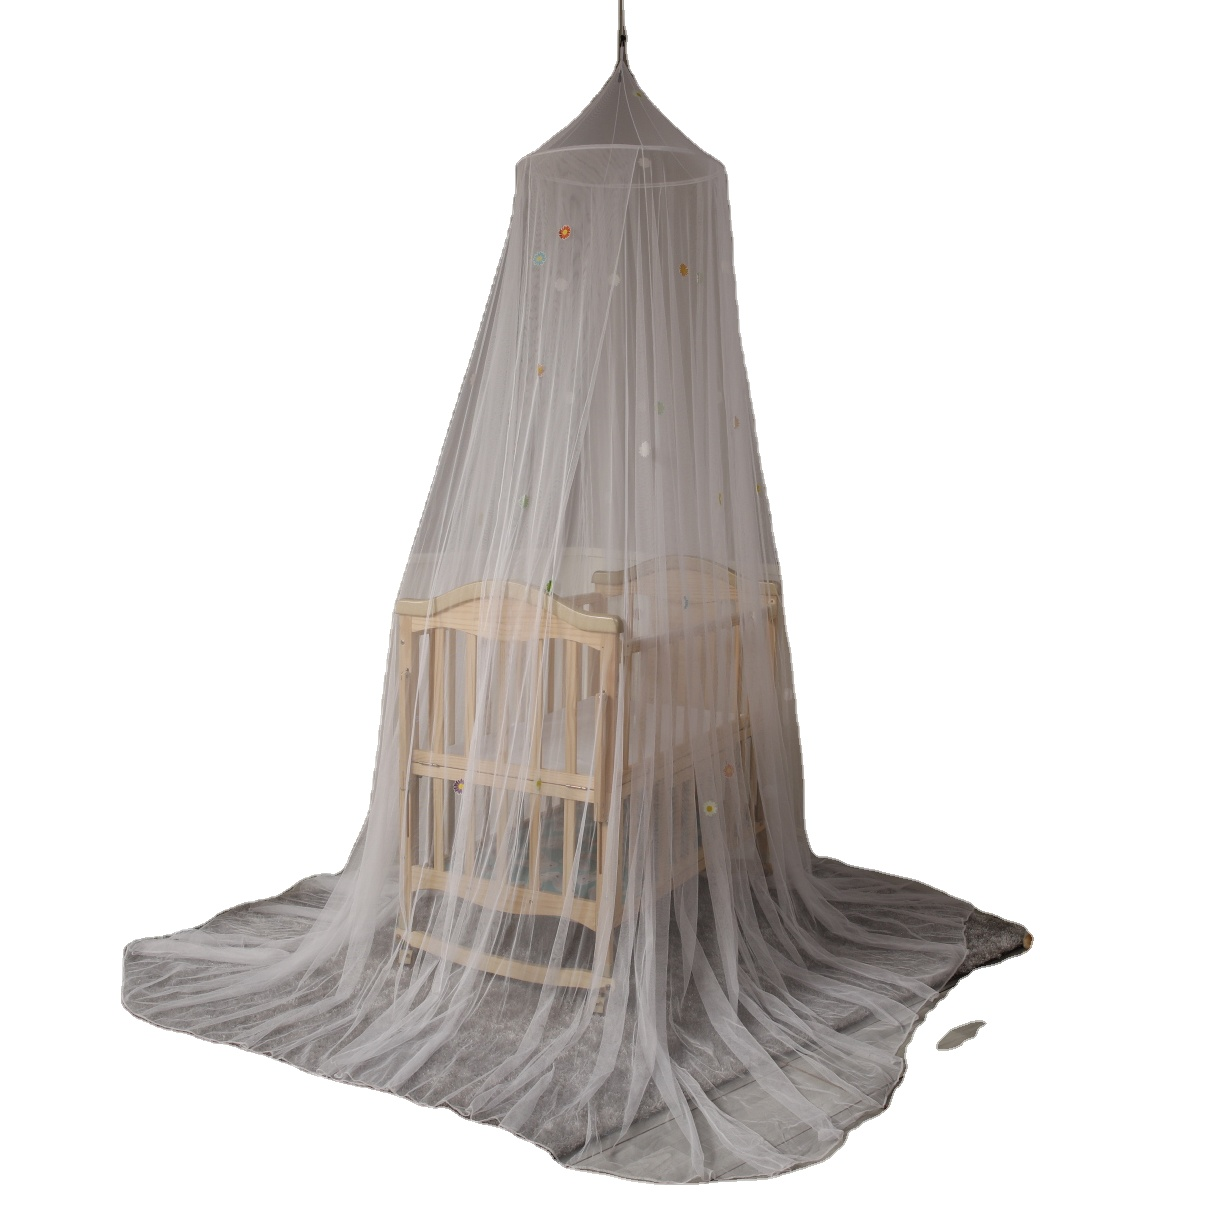 Folding Hanging Growing In The Dark Daisy Baby Mosquito Net Crib Net